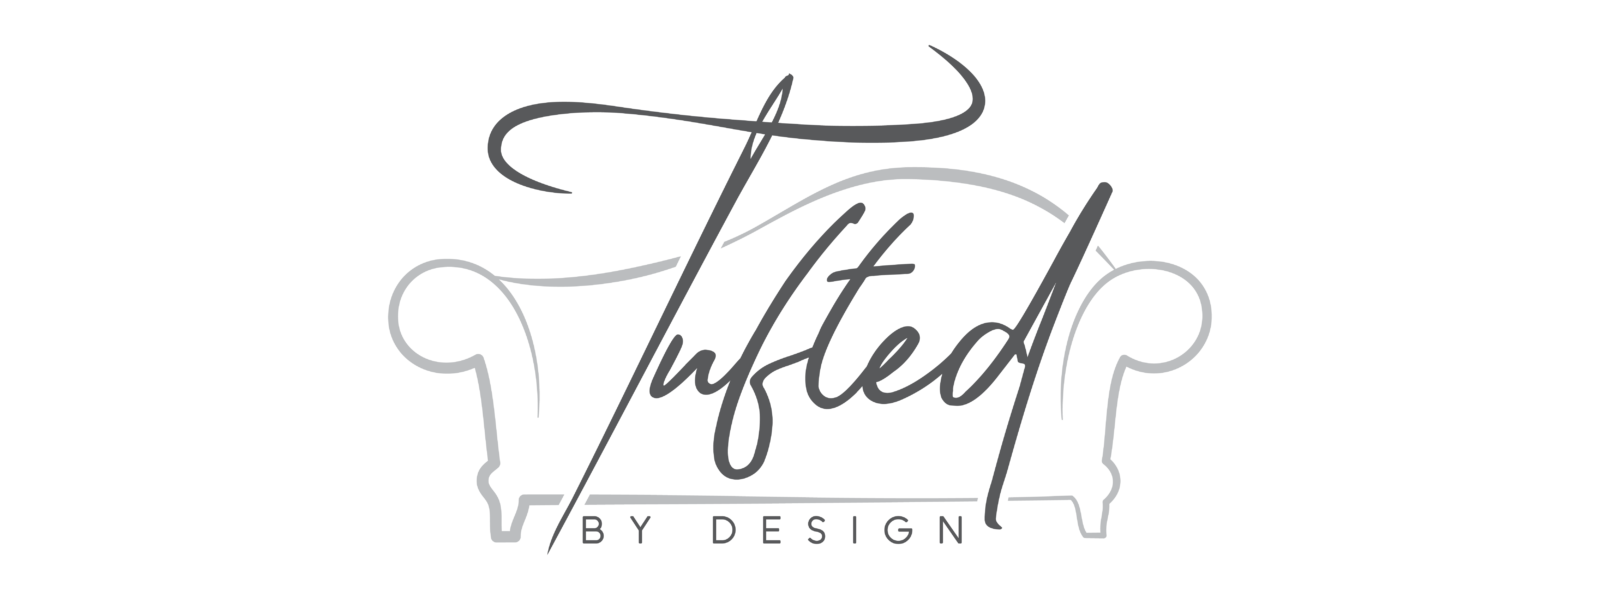 Tufted by Design